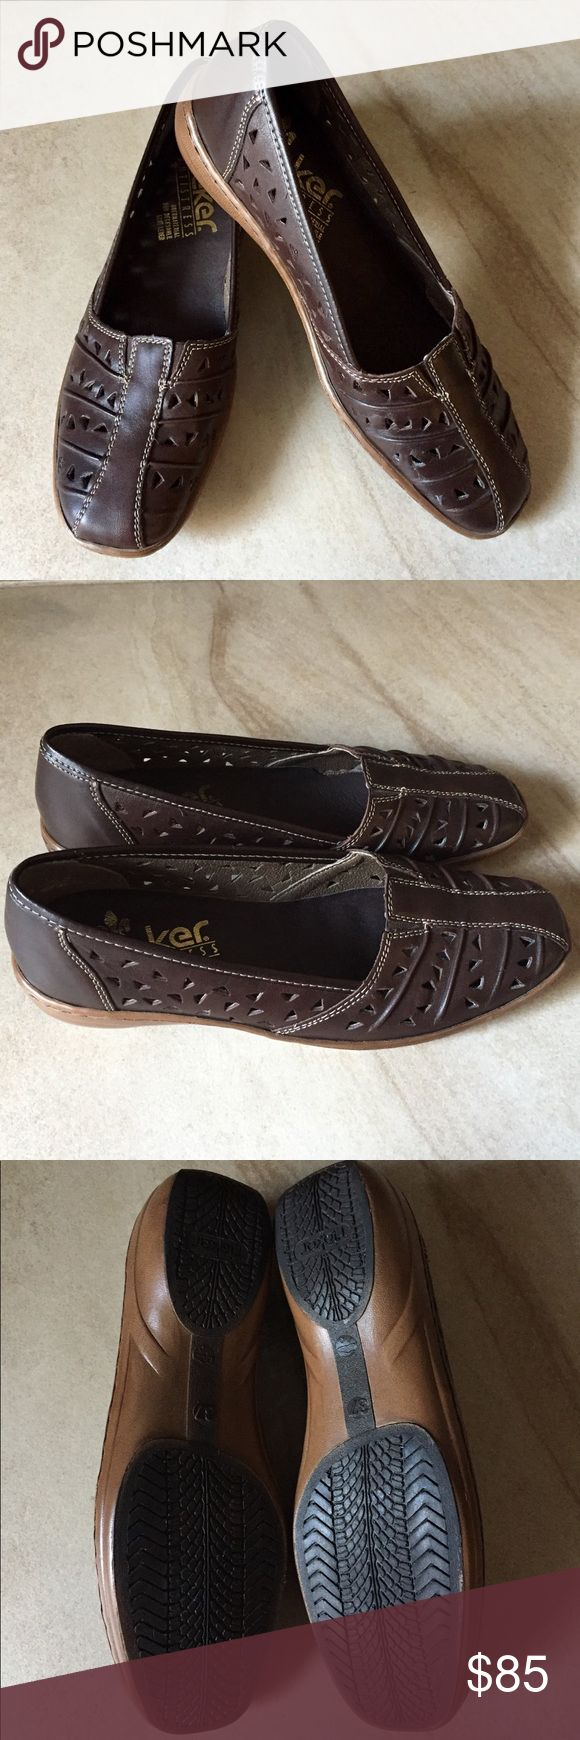 Rieker Anti-Stress Women's Shoe You need these on your feet NOW! Extremely comfortable slip-on shoes in excellent condition. Perforated design in chocolate brown color with white-stitching. Shock-absorbing soles are a complimentary caramel color. Rieker Antistress Shoes Flats & Loafers